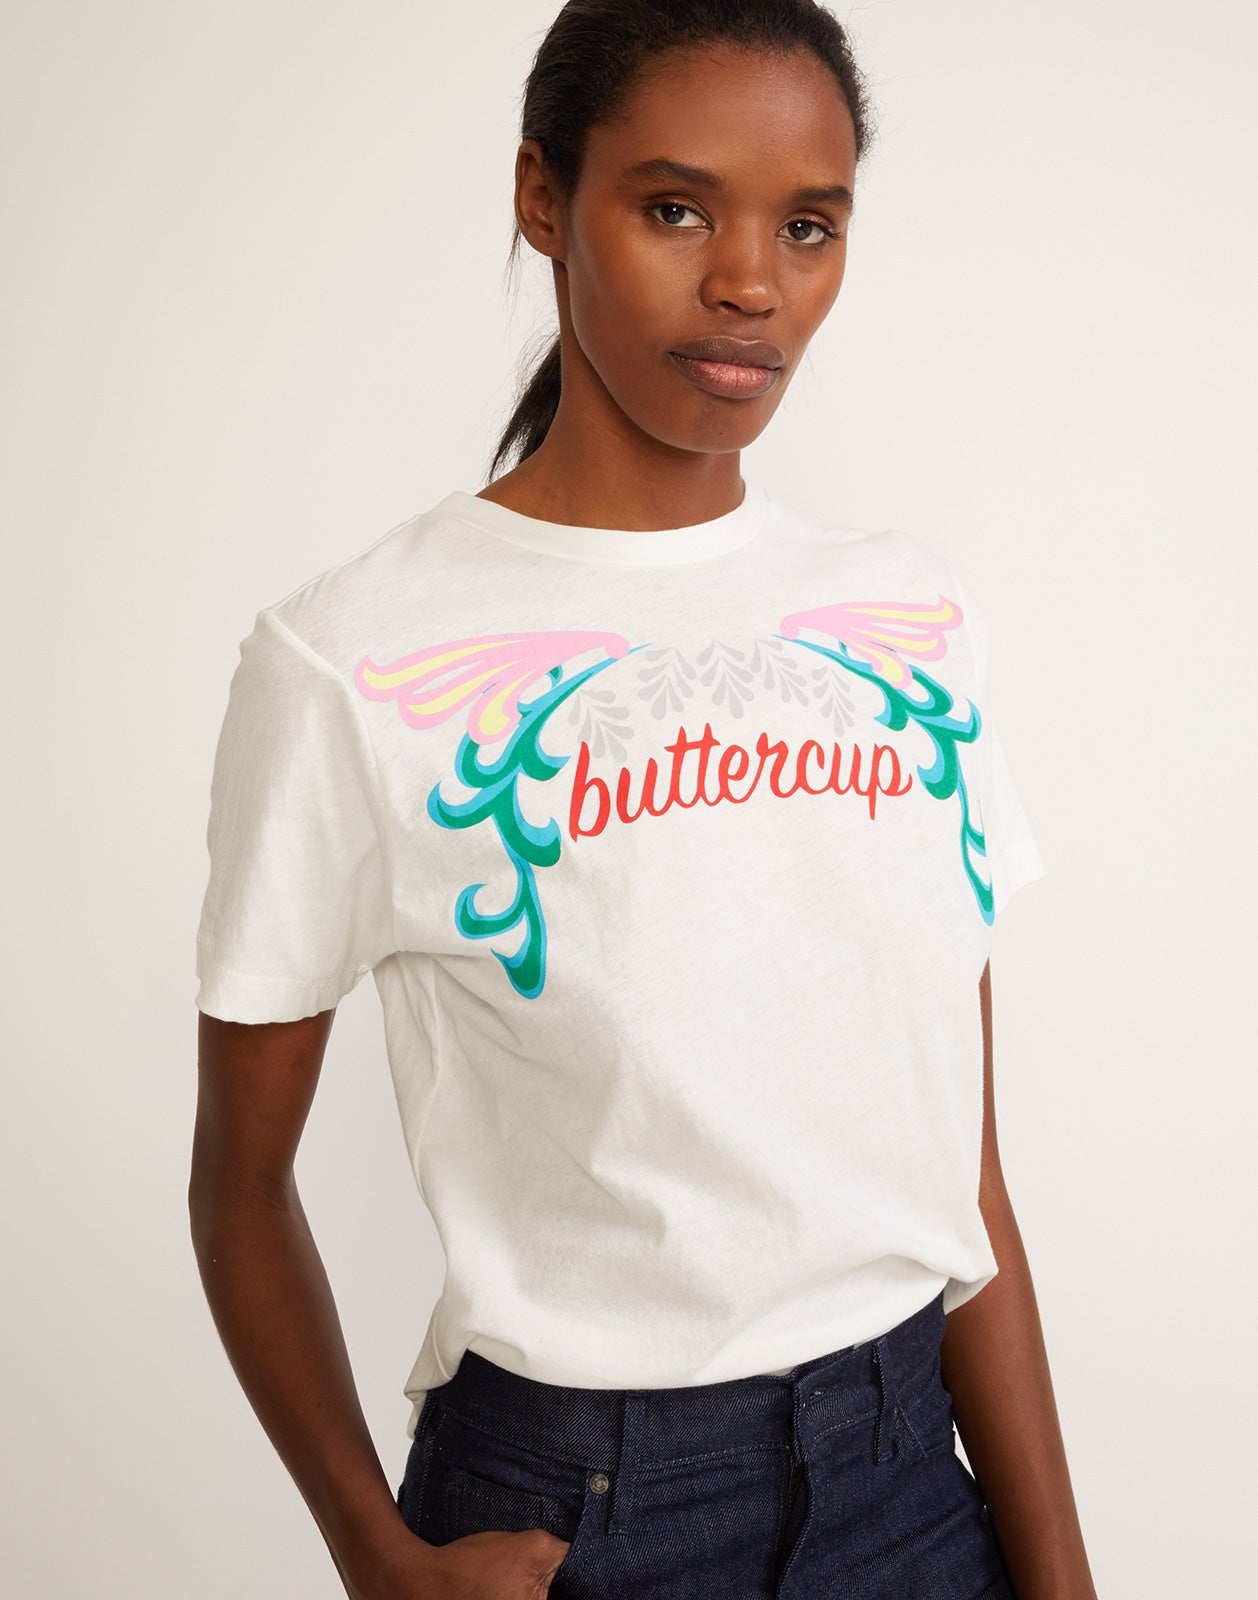 Soft white crewneck tee with buttercup printed across the front.